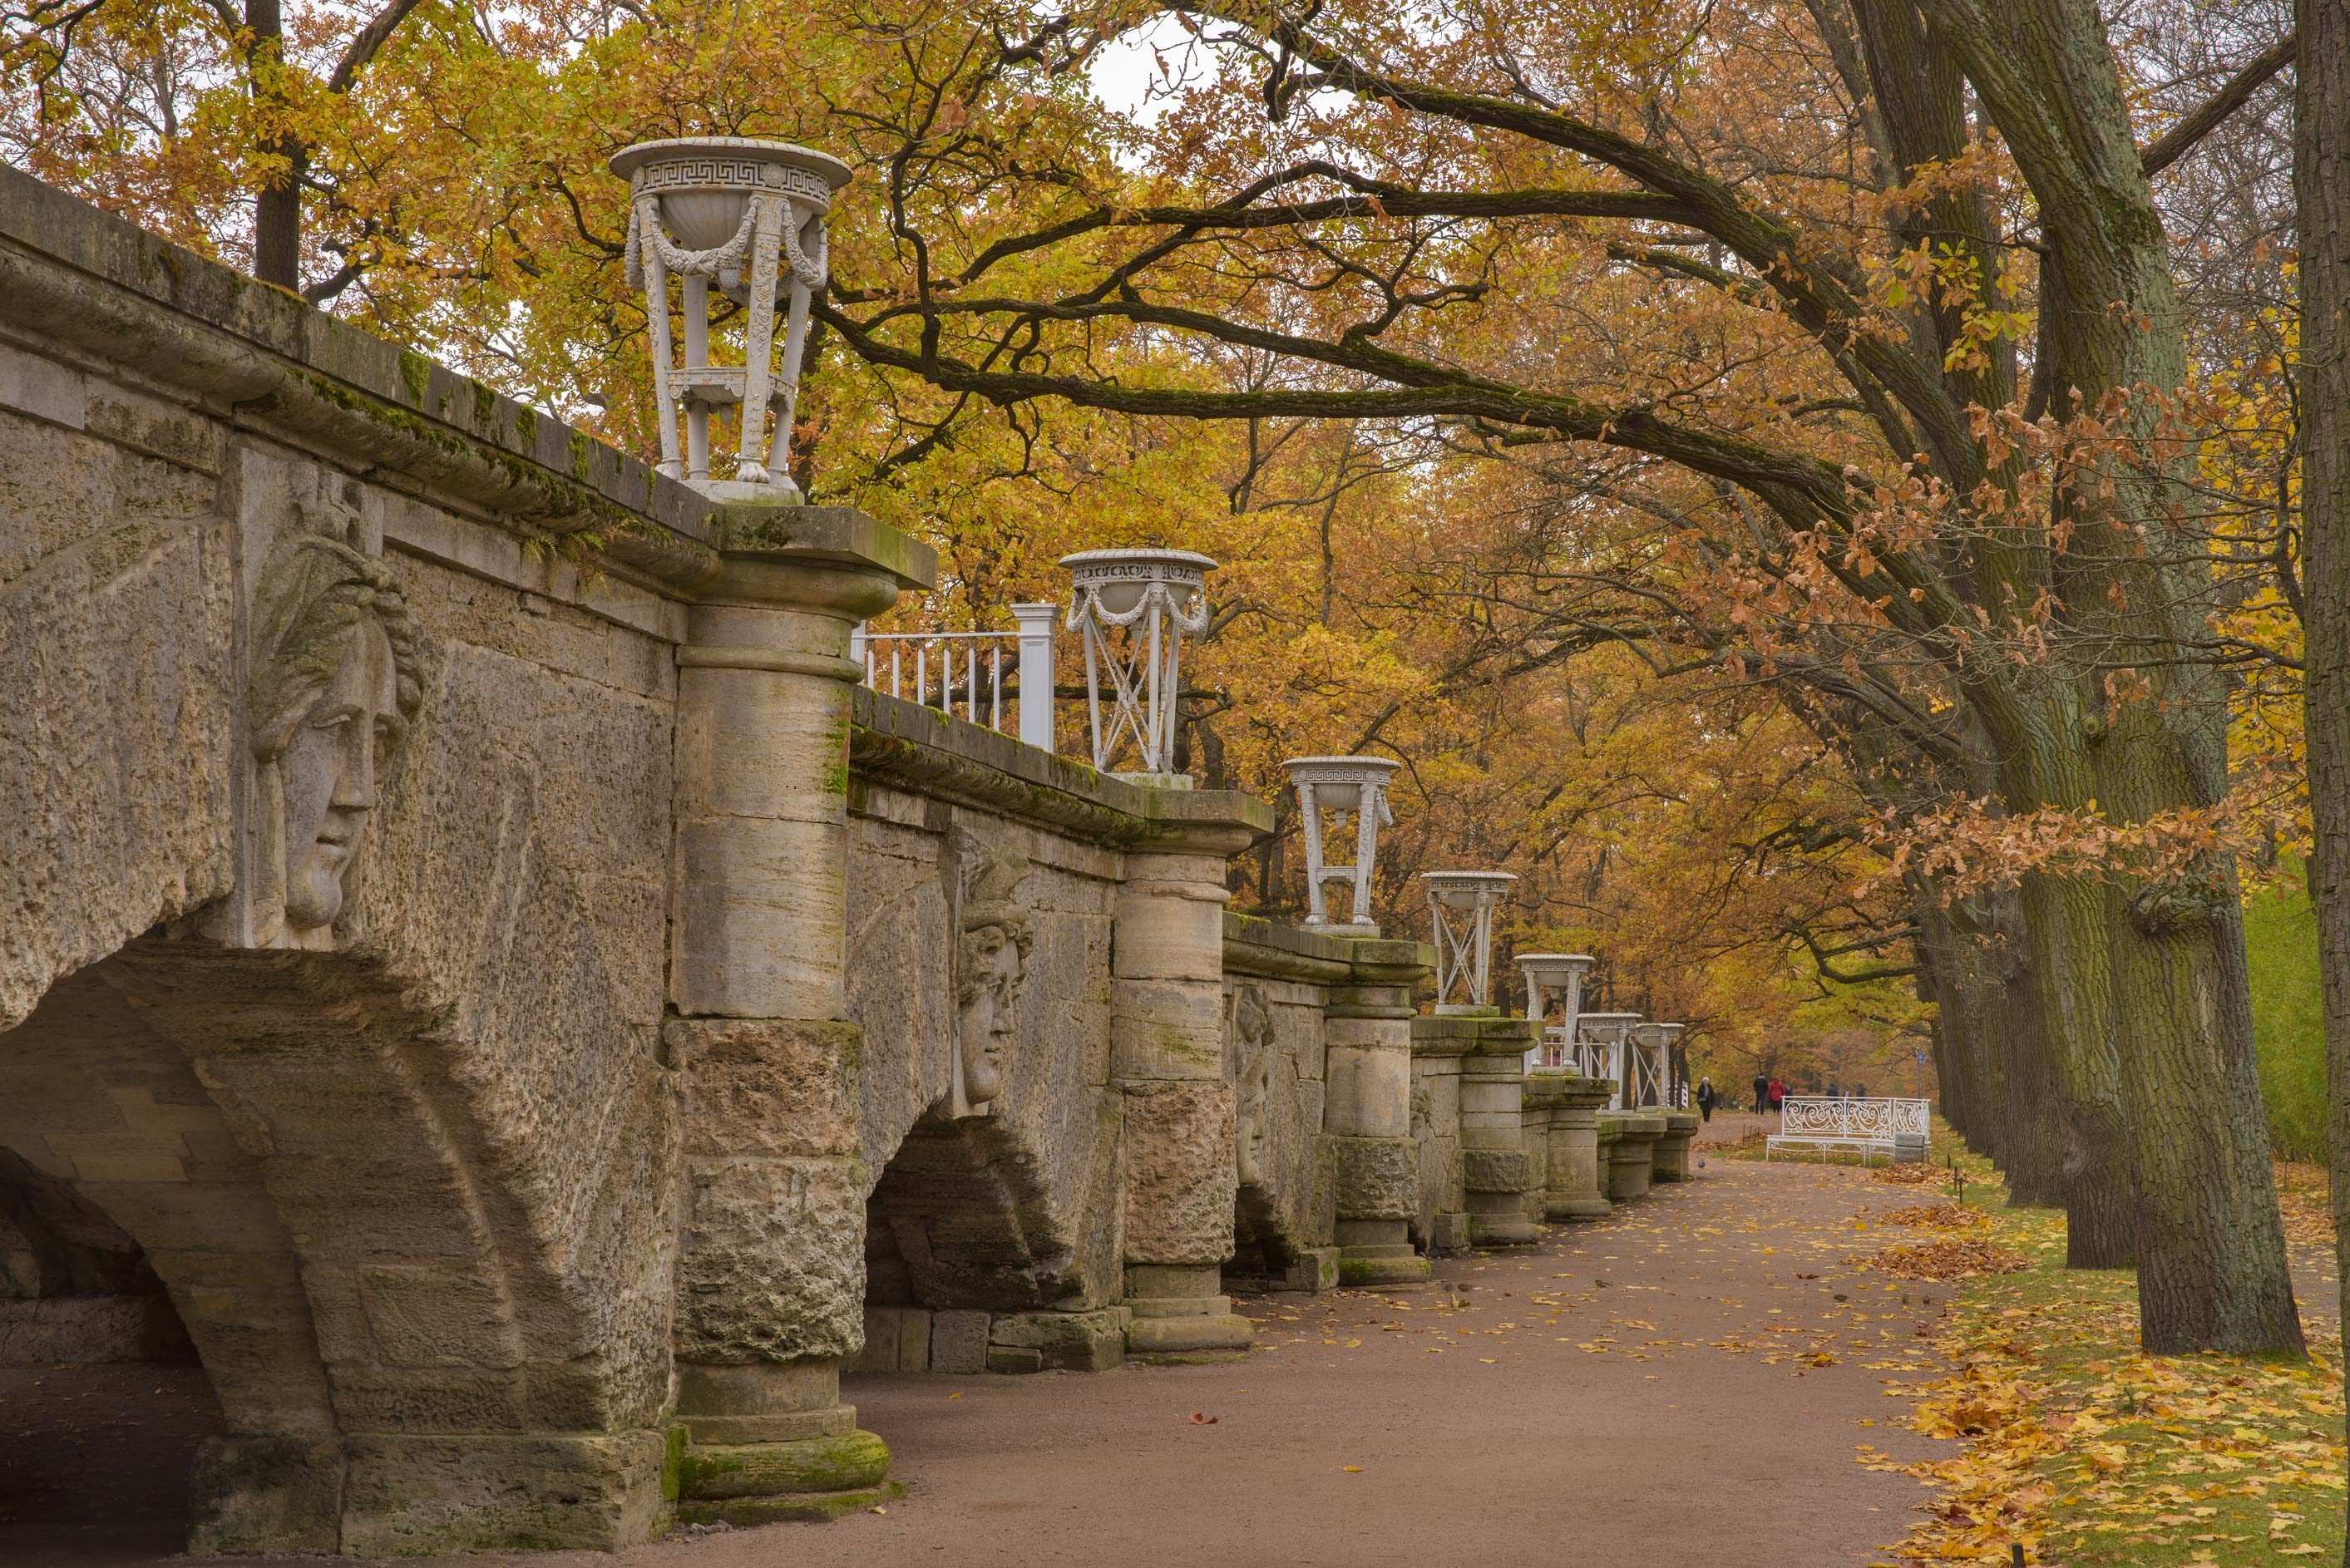 Ramp of Cameron Gallery in Catherine Park...Selo) near St.Petersburg, Russia